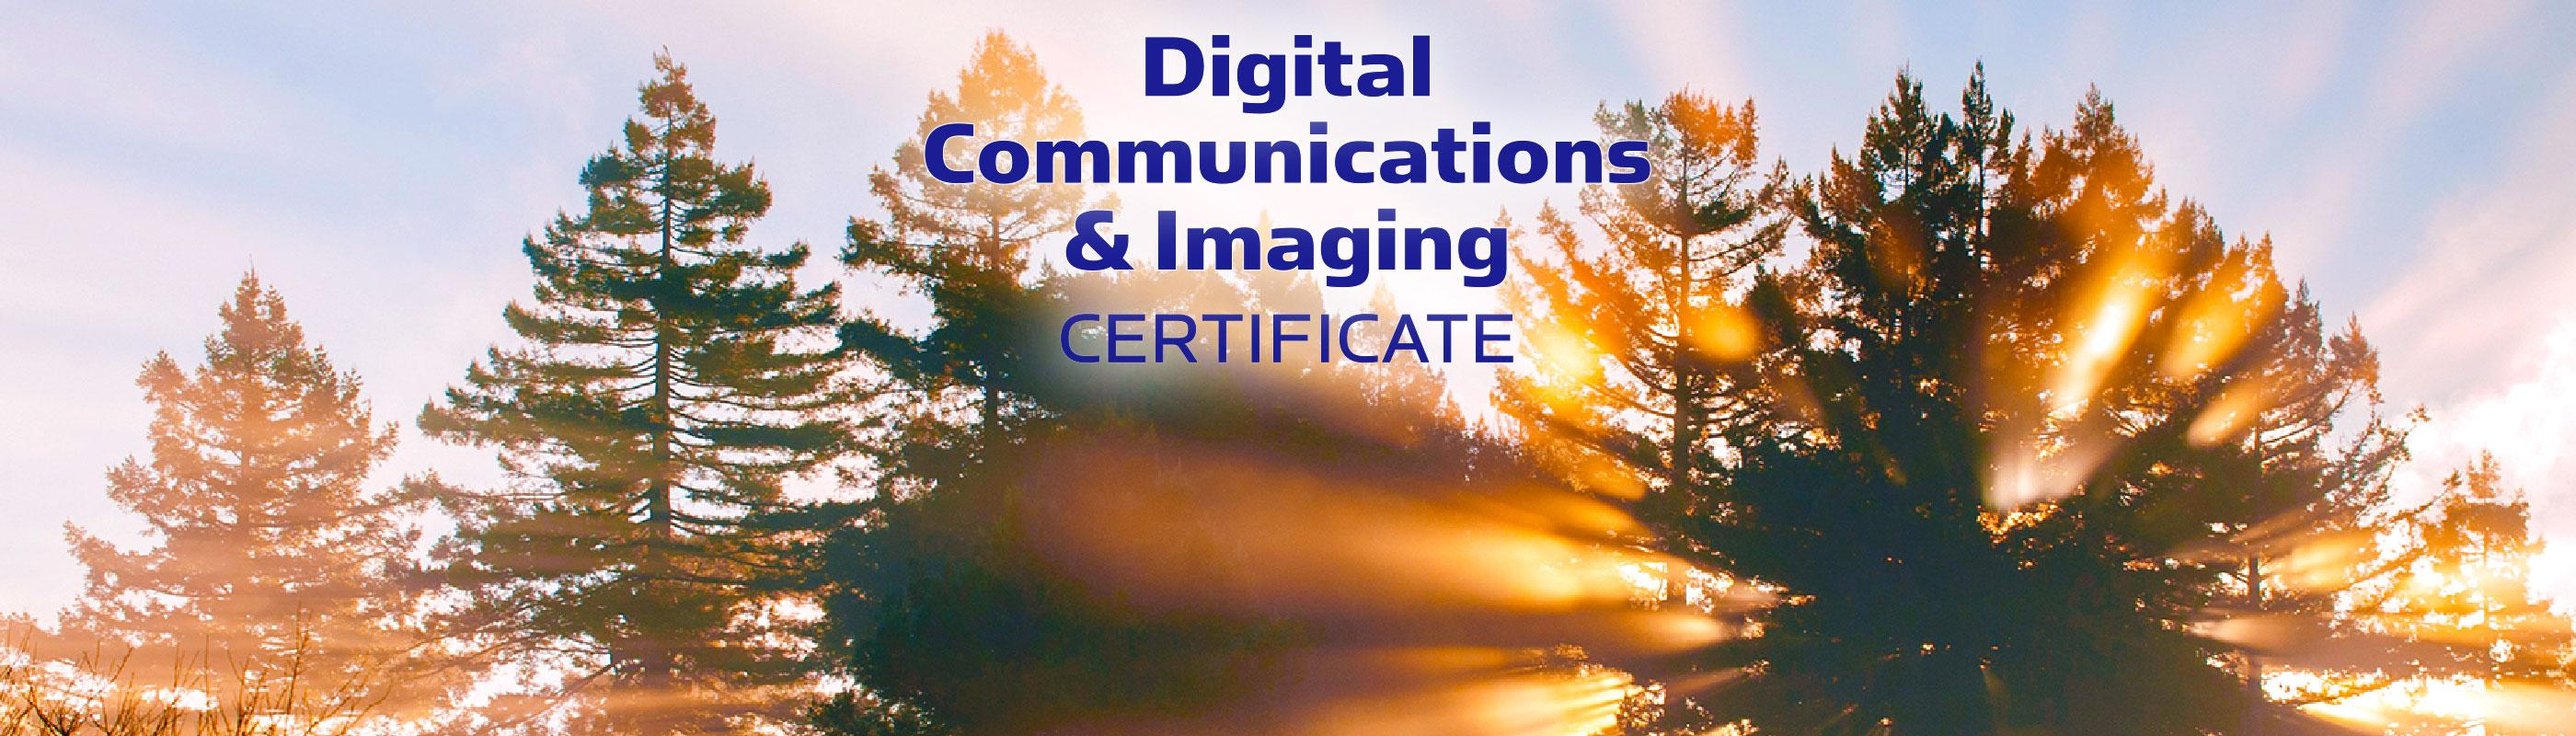 Digital Communications and Imaging Certificate